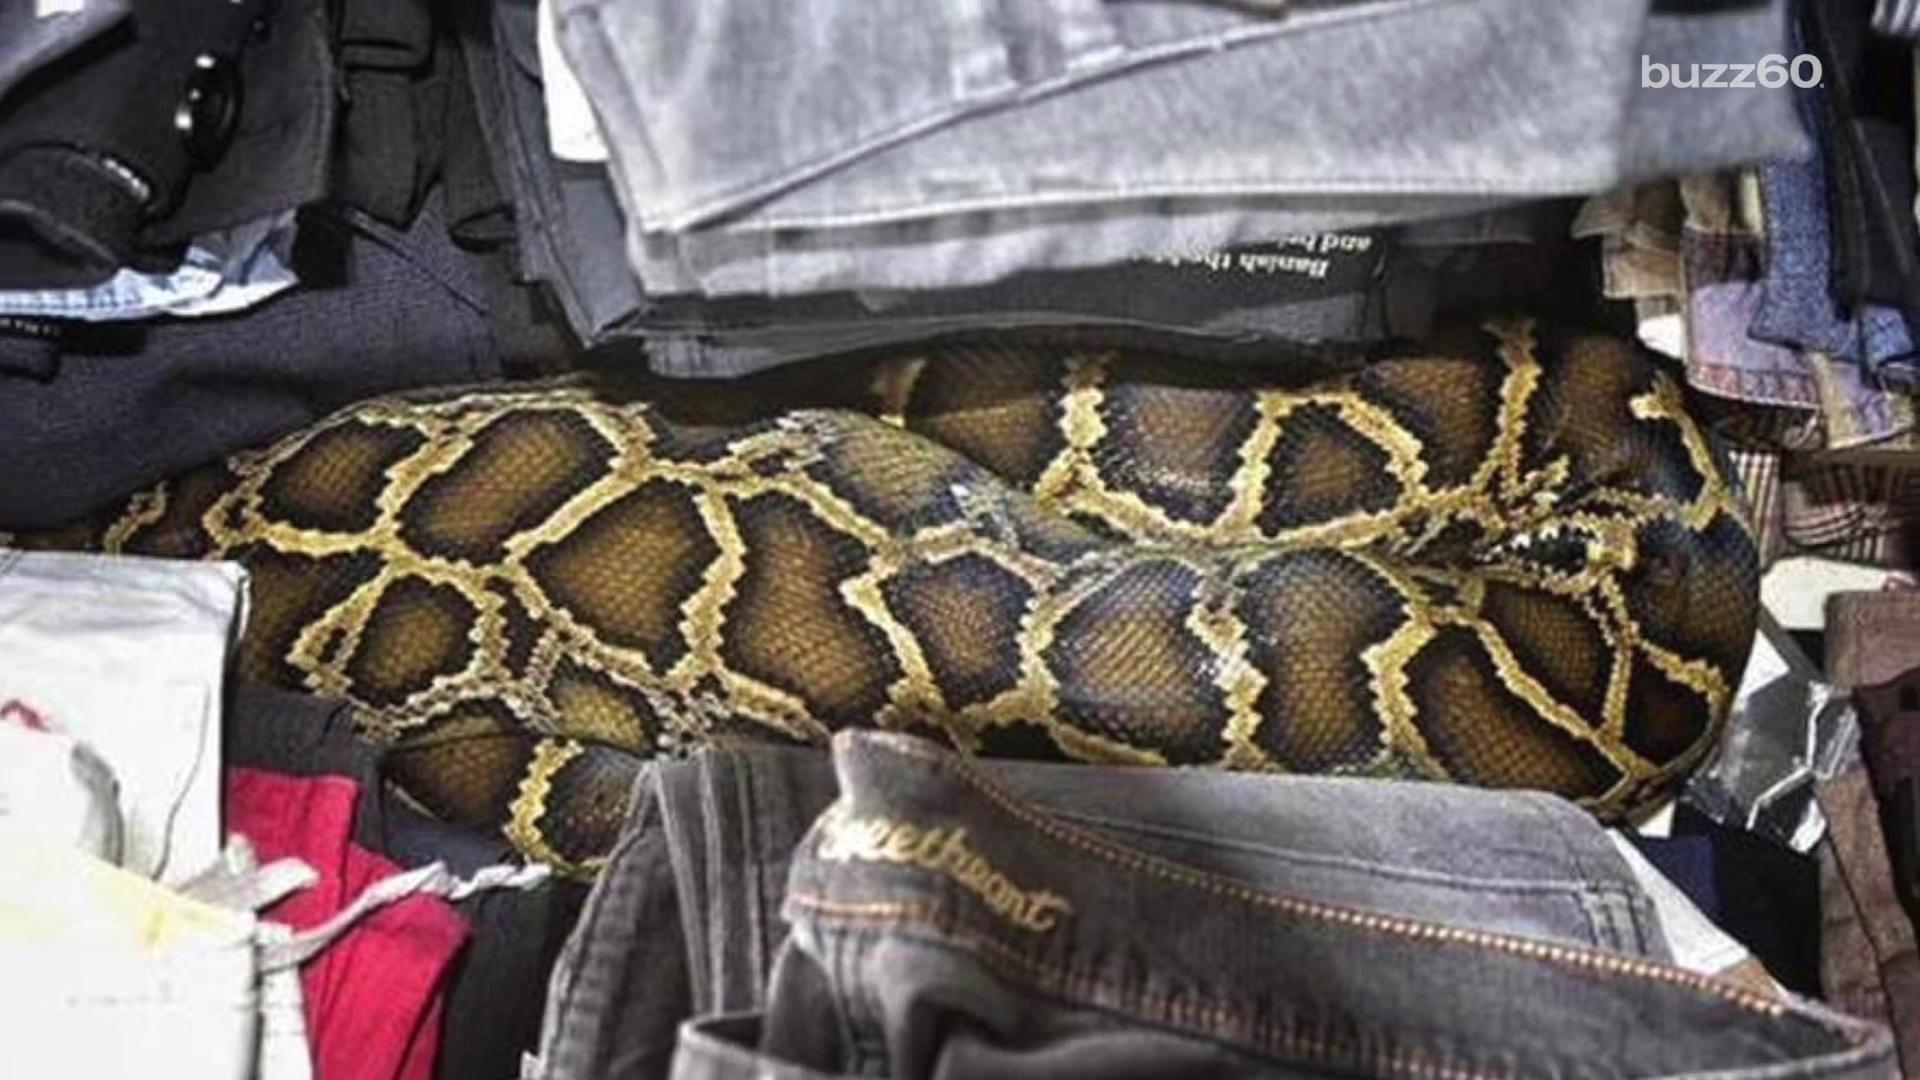 Flea Market Miami >> 8 Foot Snake Found Hidden In Clothes At Flea Market